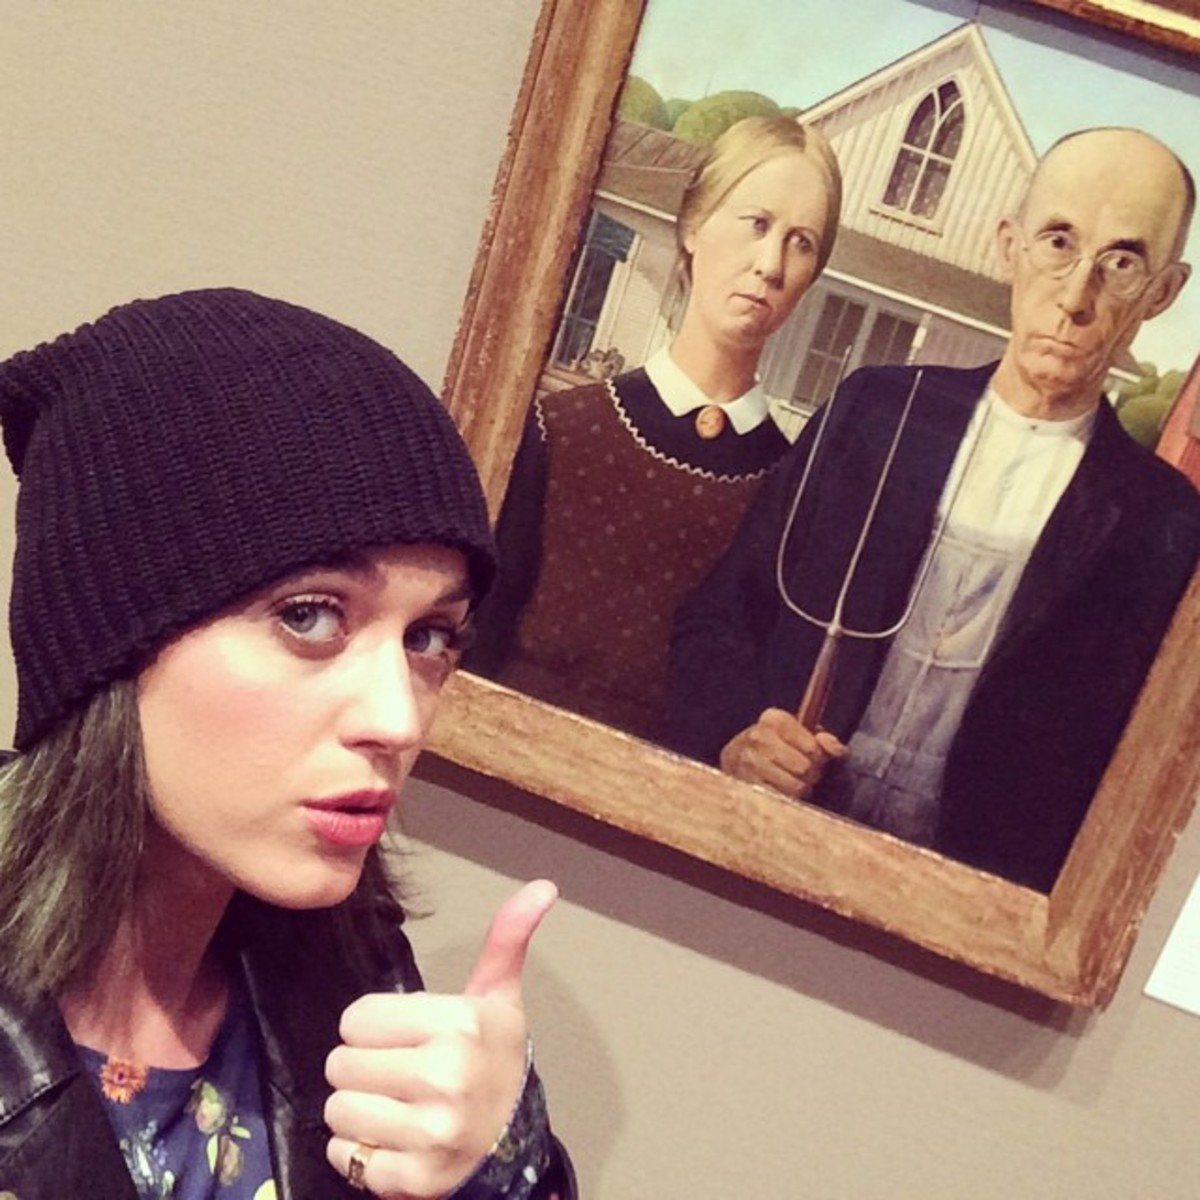 Katy going undercover to check out the Art Institute in Chicago